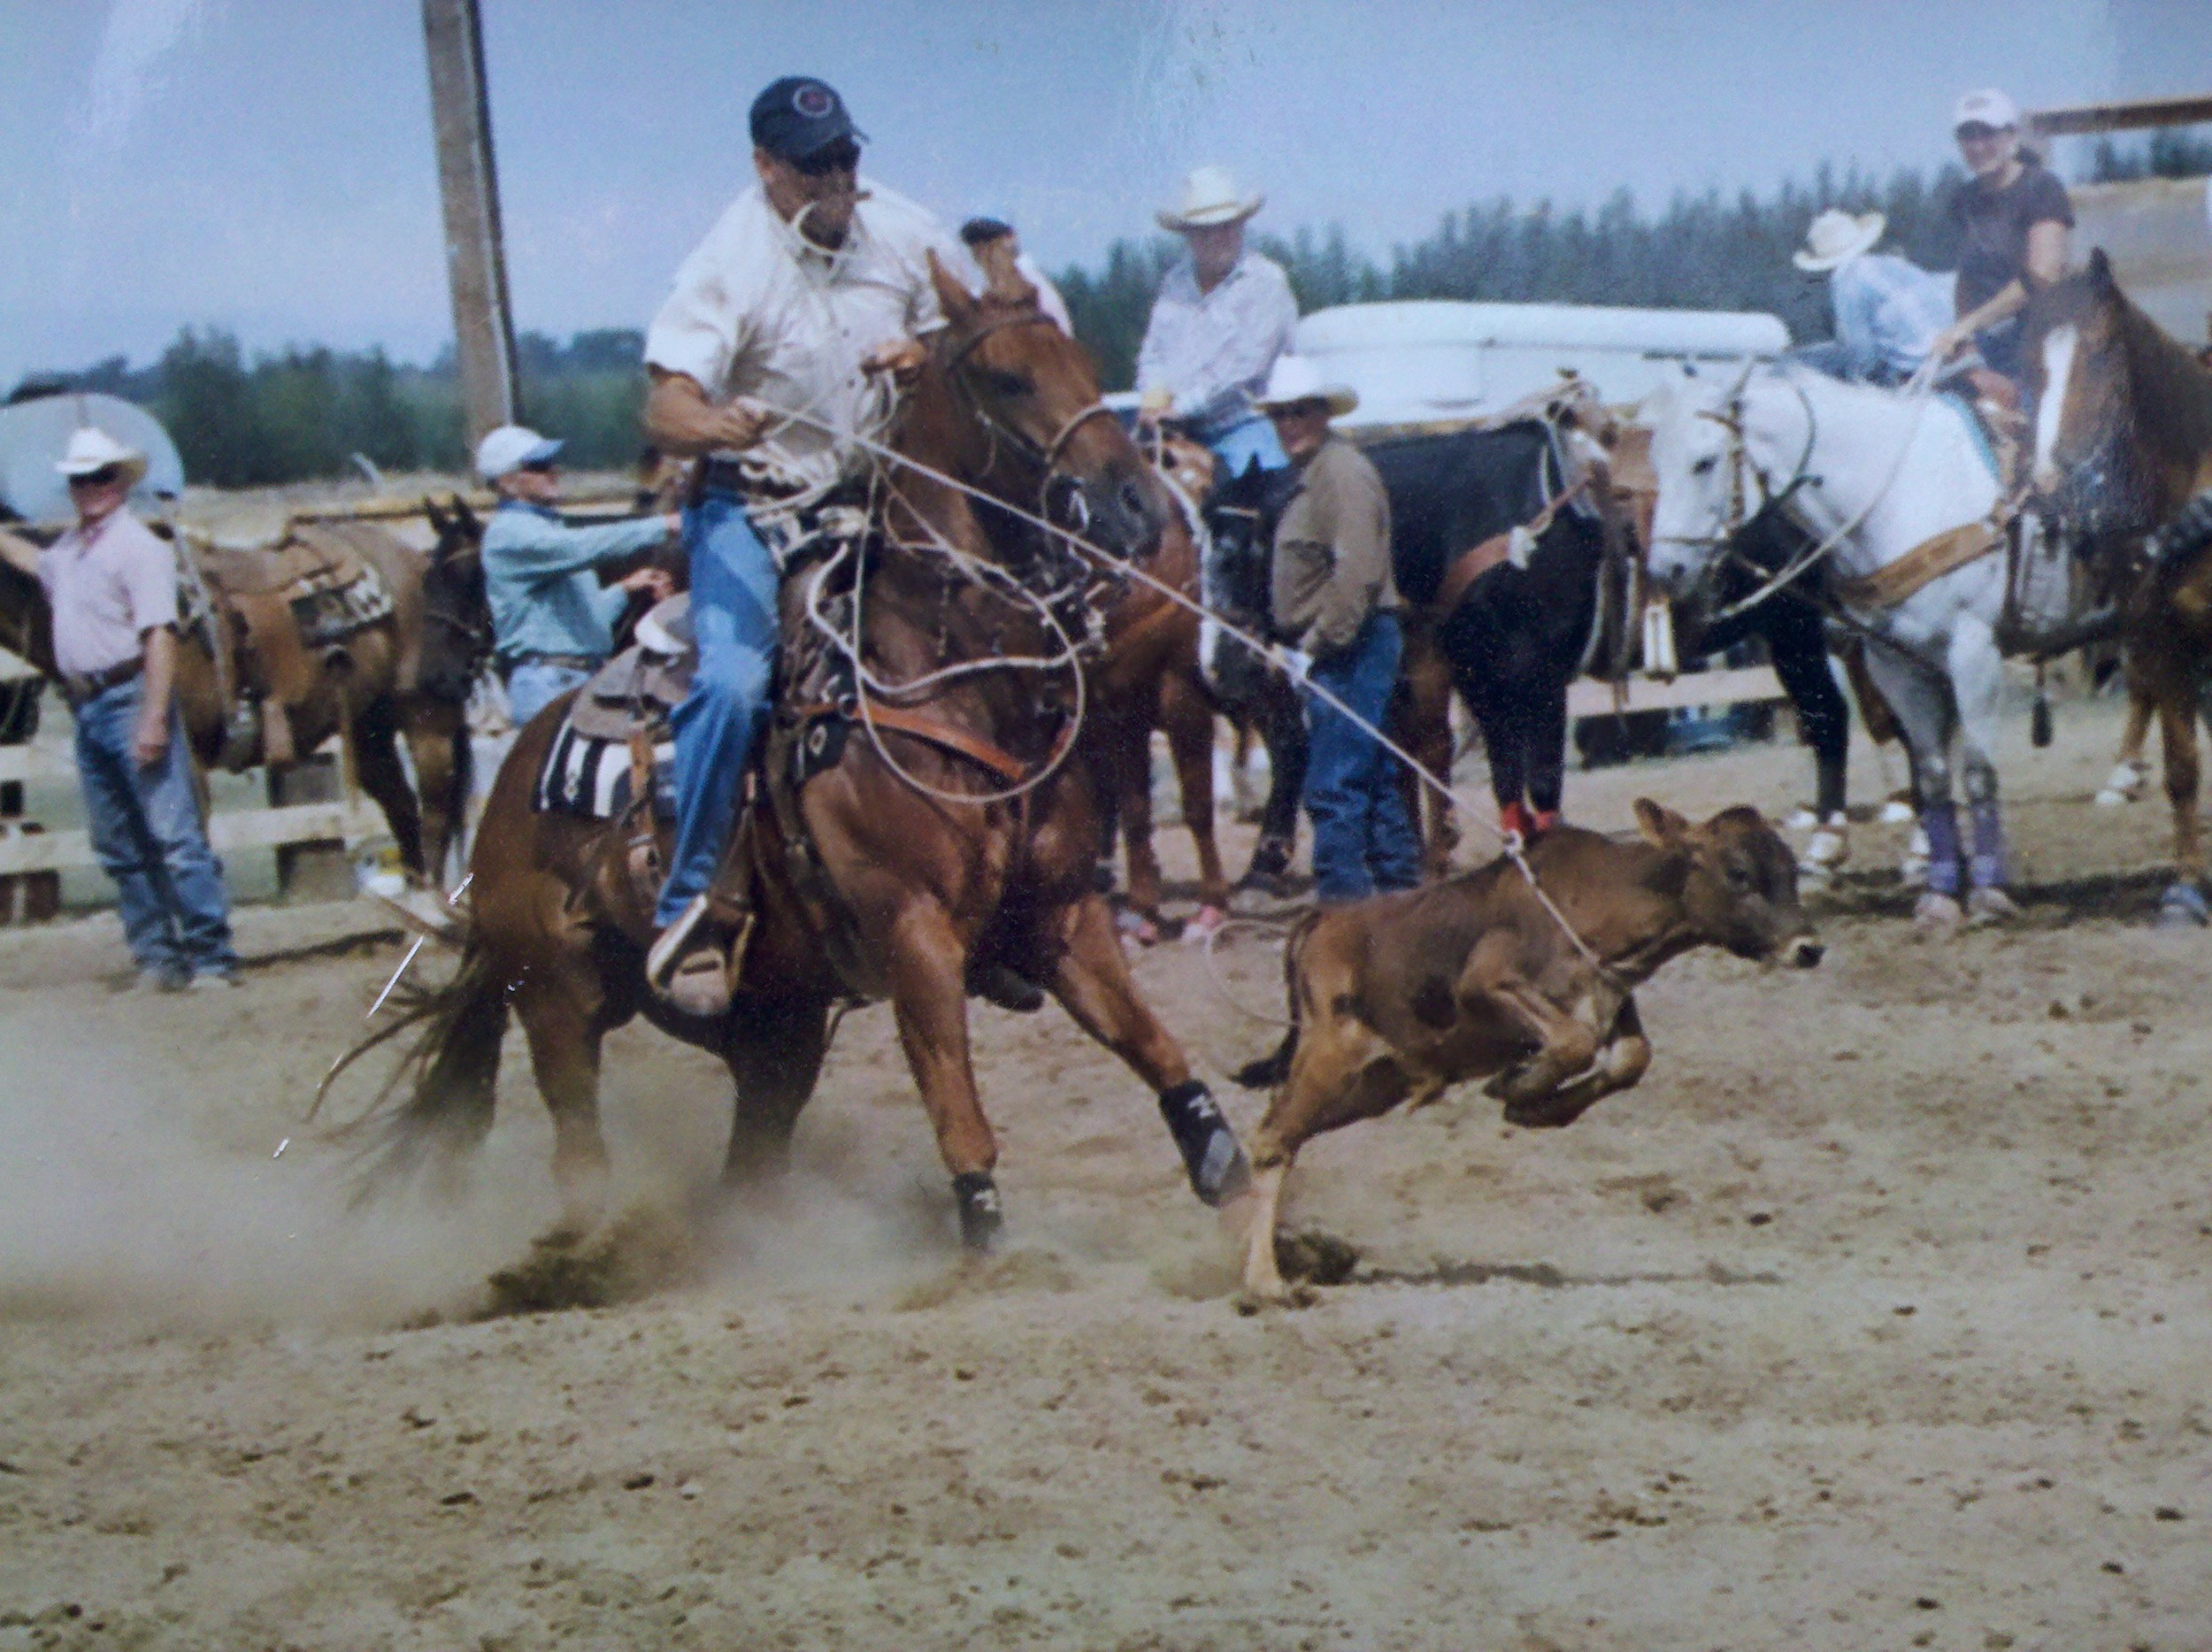 I loved to calf rope and competed at a novice level. I won money but it was mostly for fun and even winning would barely cover fuel to go! But I had a lot of fun with my friends and had a couple of neat horses.